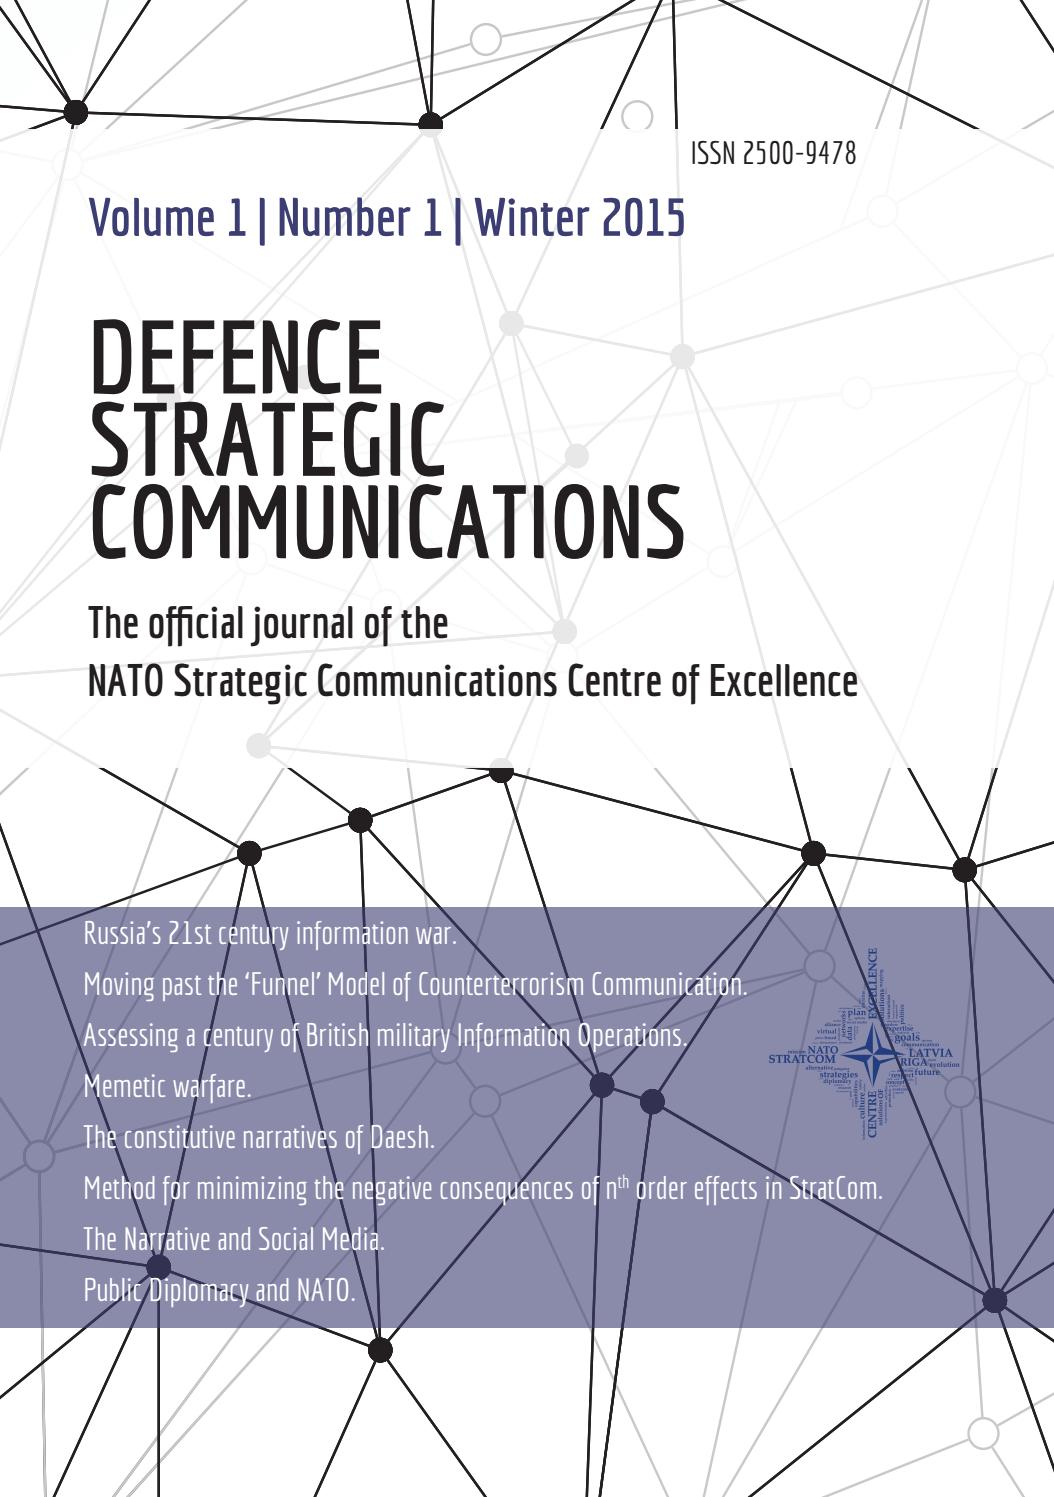 Academic Journal Defence Strategic Communications Vol 1 By Nato Stratcom Coe Issuu Facebook gives people the power to share and makes the world. defence strategic communications vol